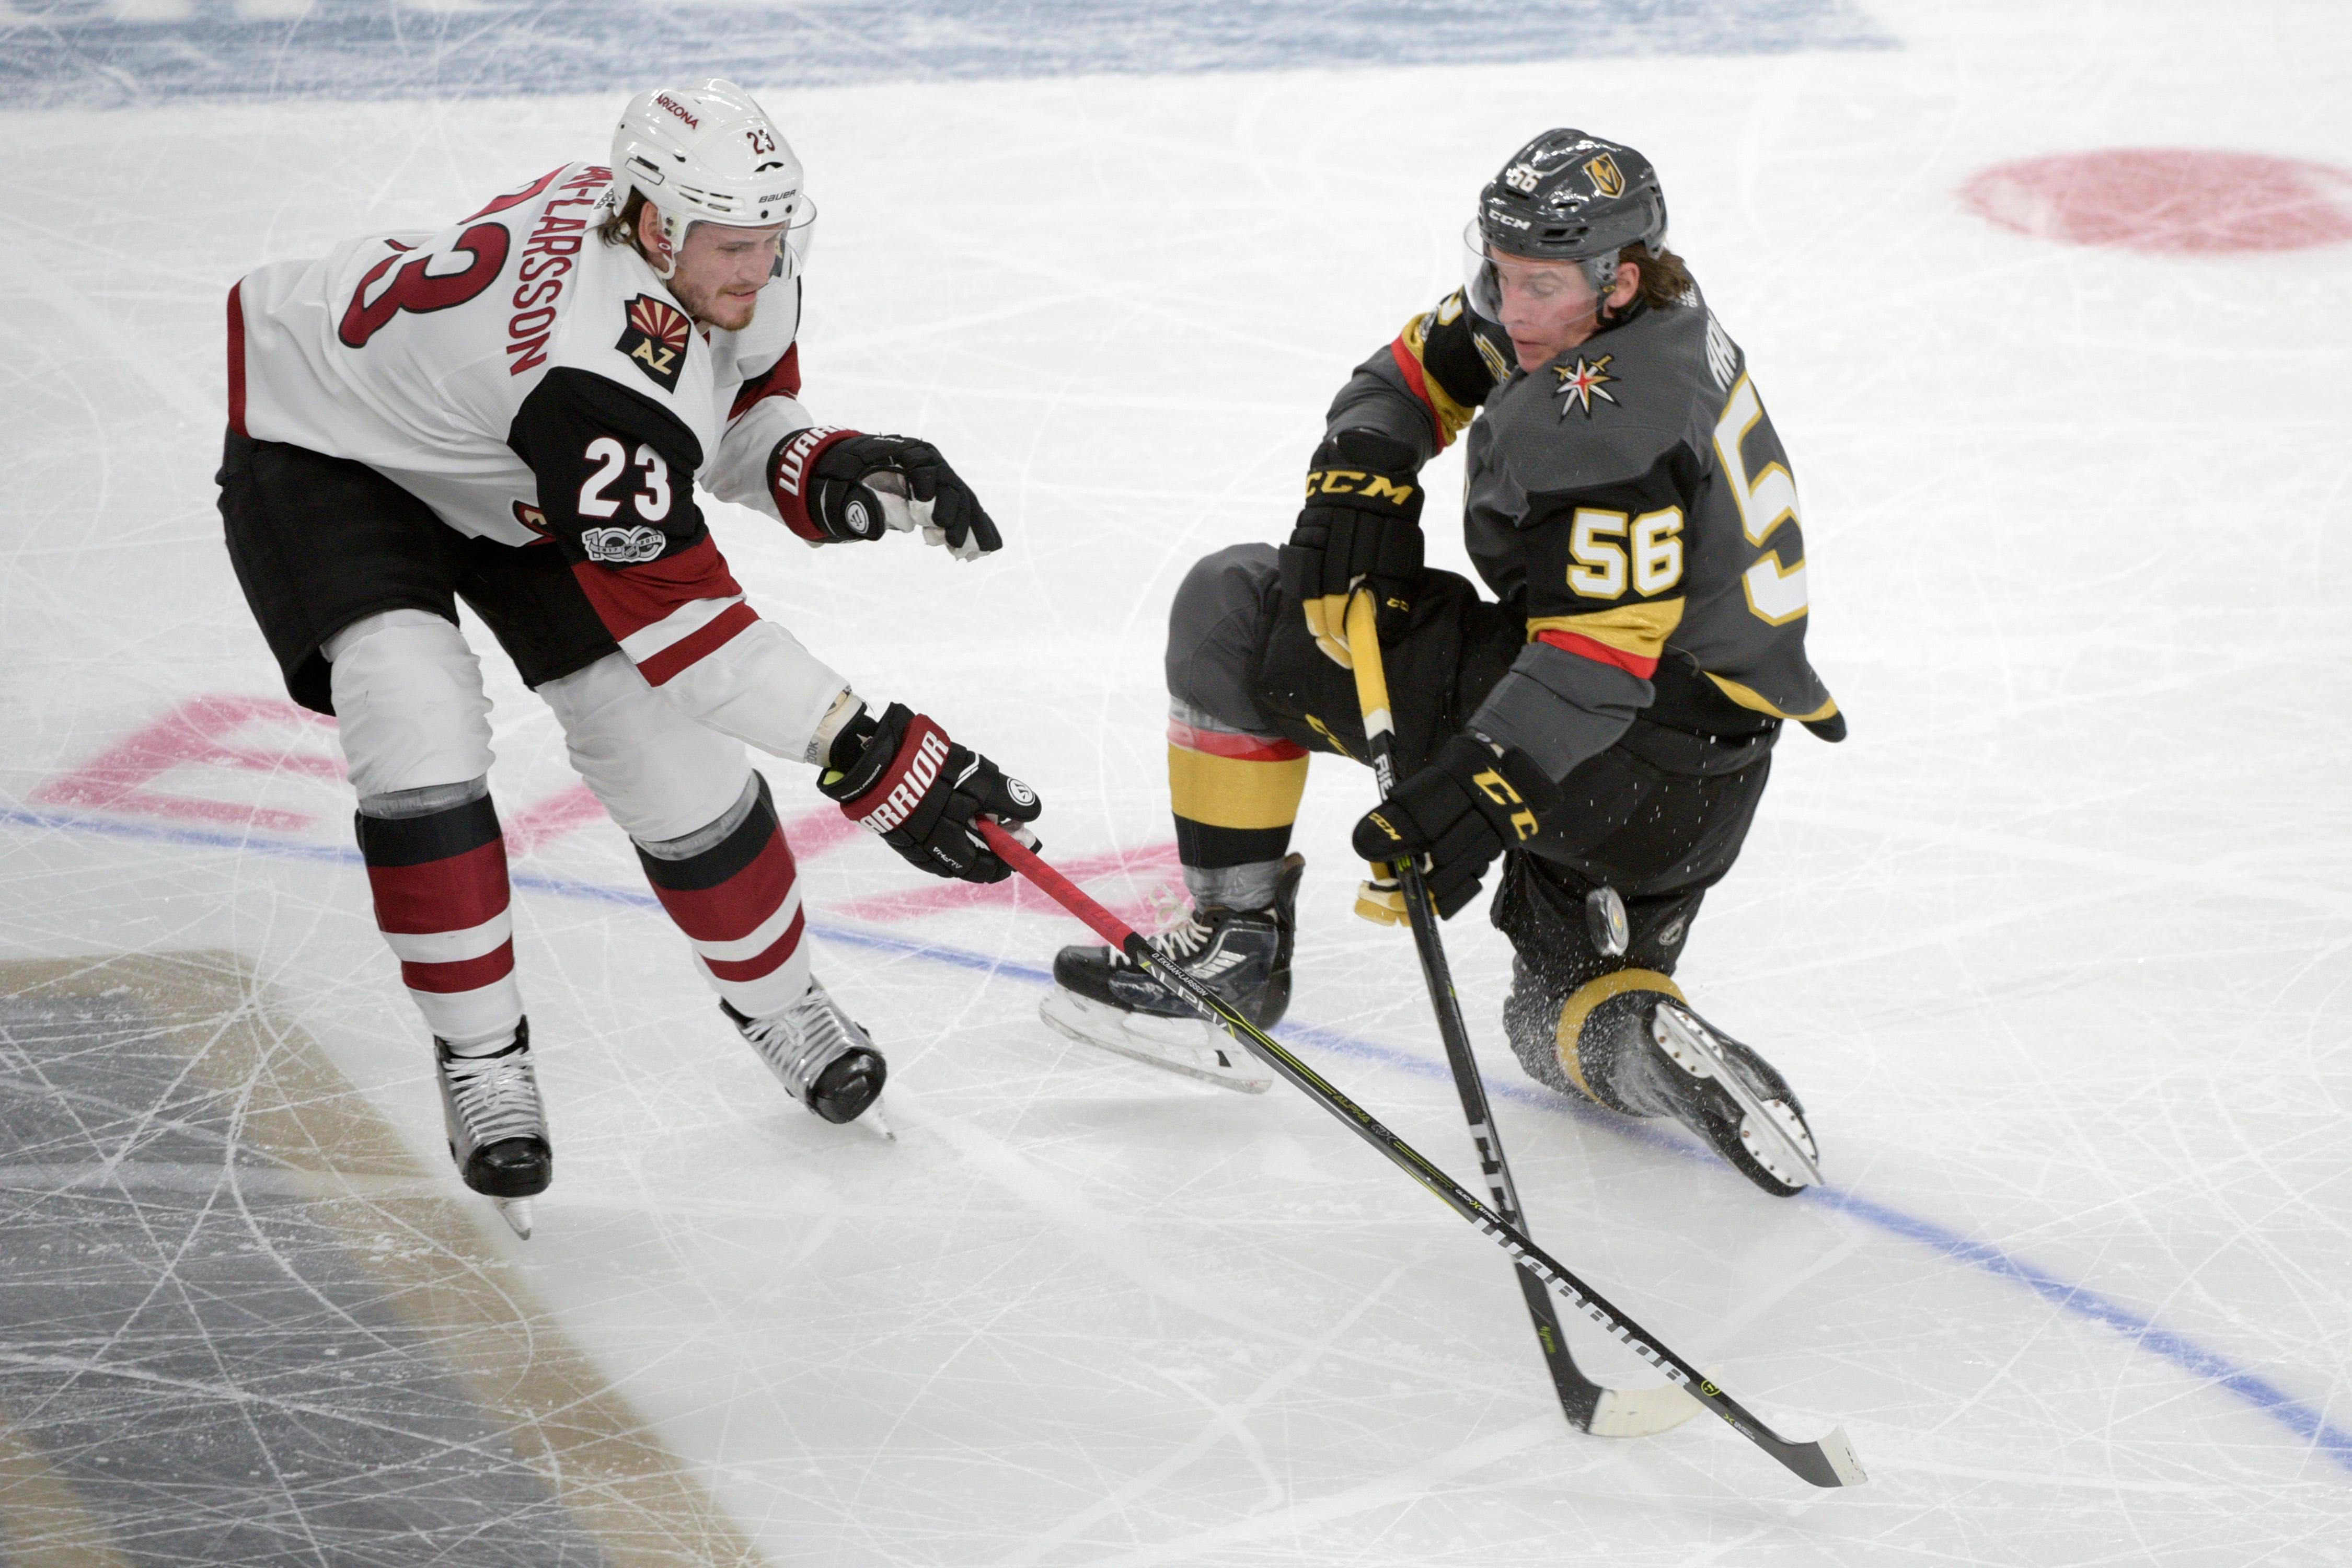 Vegas Golden Knights left wing Erik Haula (56) loses control of the puck under pressure from Arizona Coyotes defenseman Oliver Ekman-Larsson (23) during the Knights home opener Tuesday, Oct. 10, 2017, at the T-Mobile Arena. The Knights won 5-2 to extend their winning streak to 3-0. CREDIT: Sam Morris/Las Vegas News Bureau